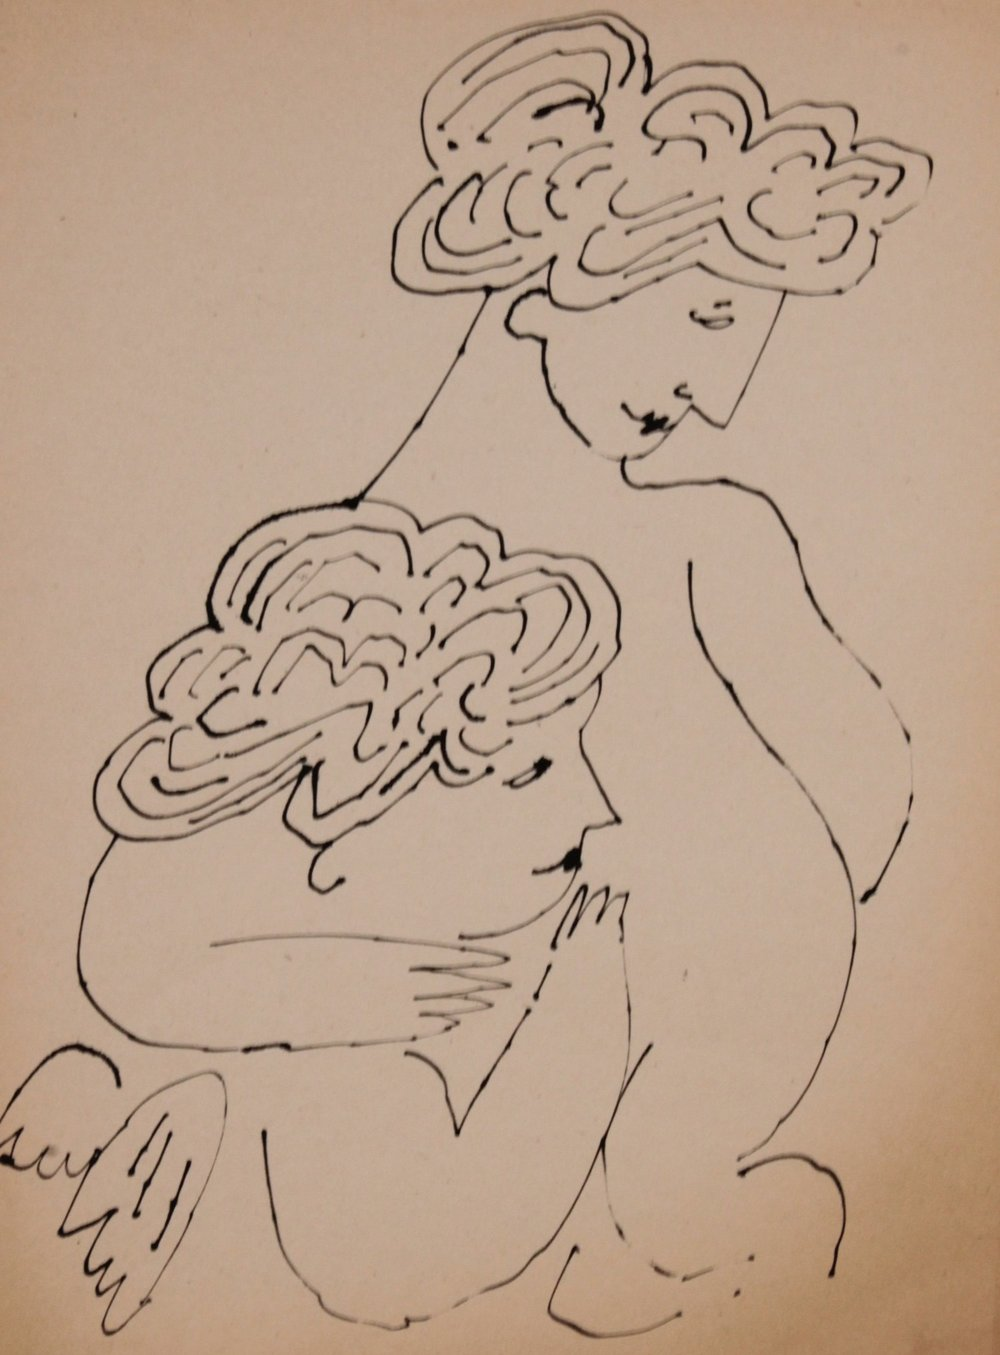 Andy Warhol - Two Cherubs Embrace - Additional Information